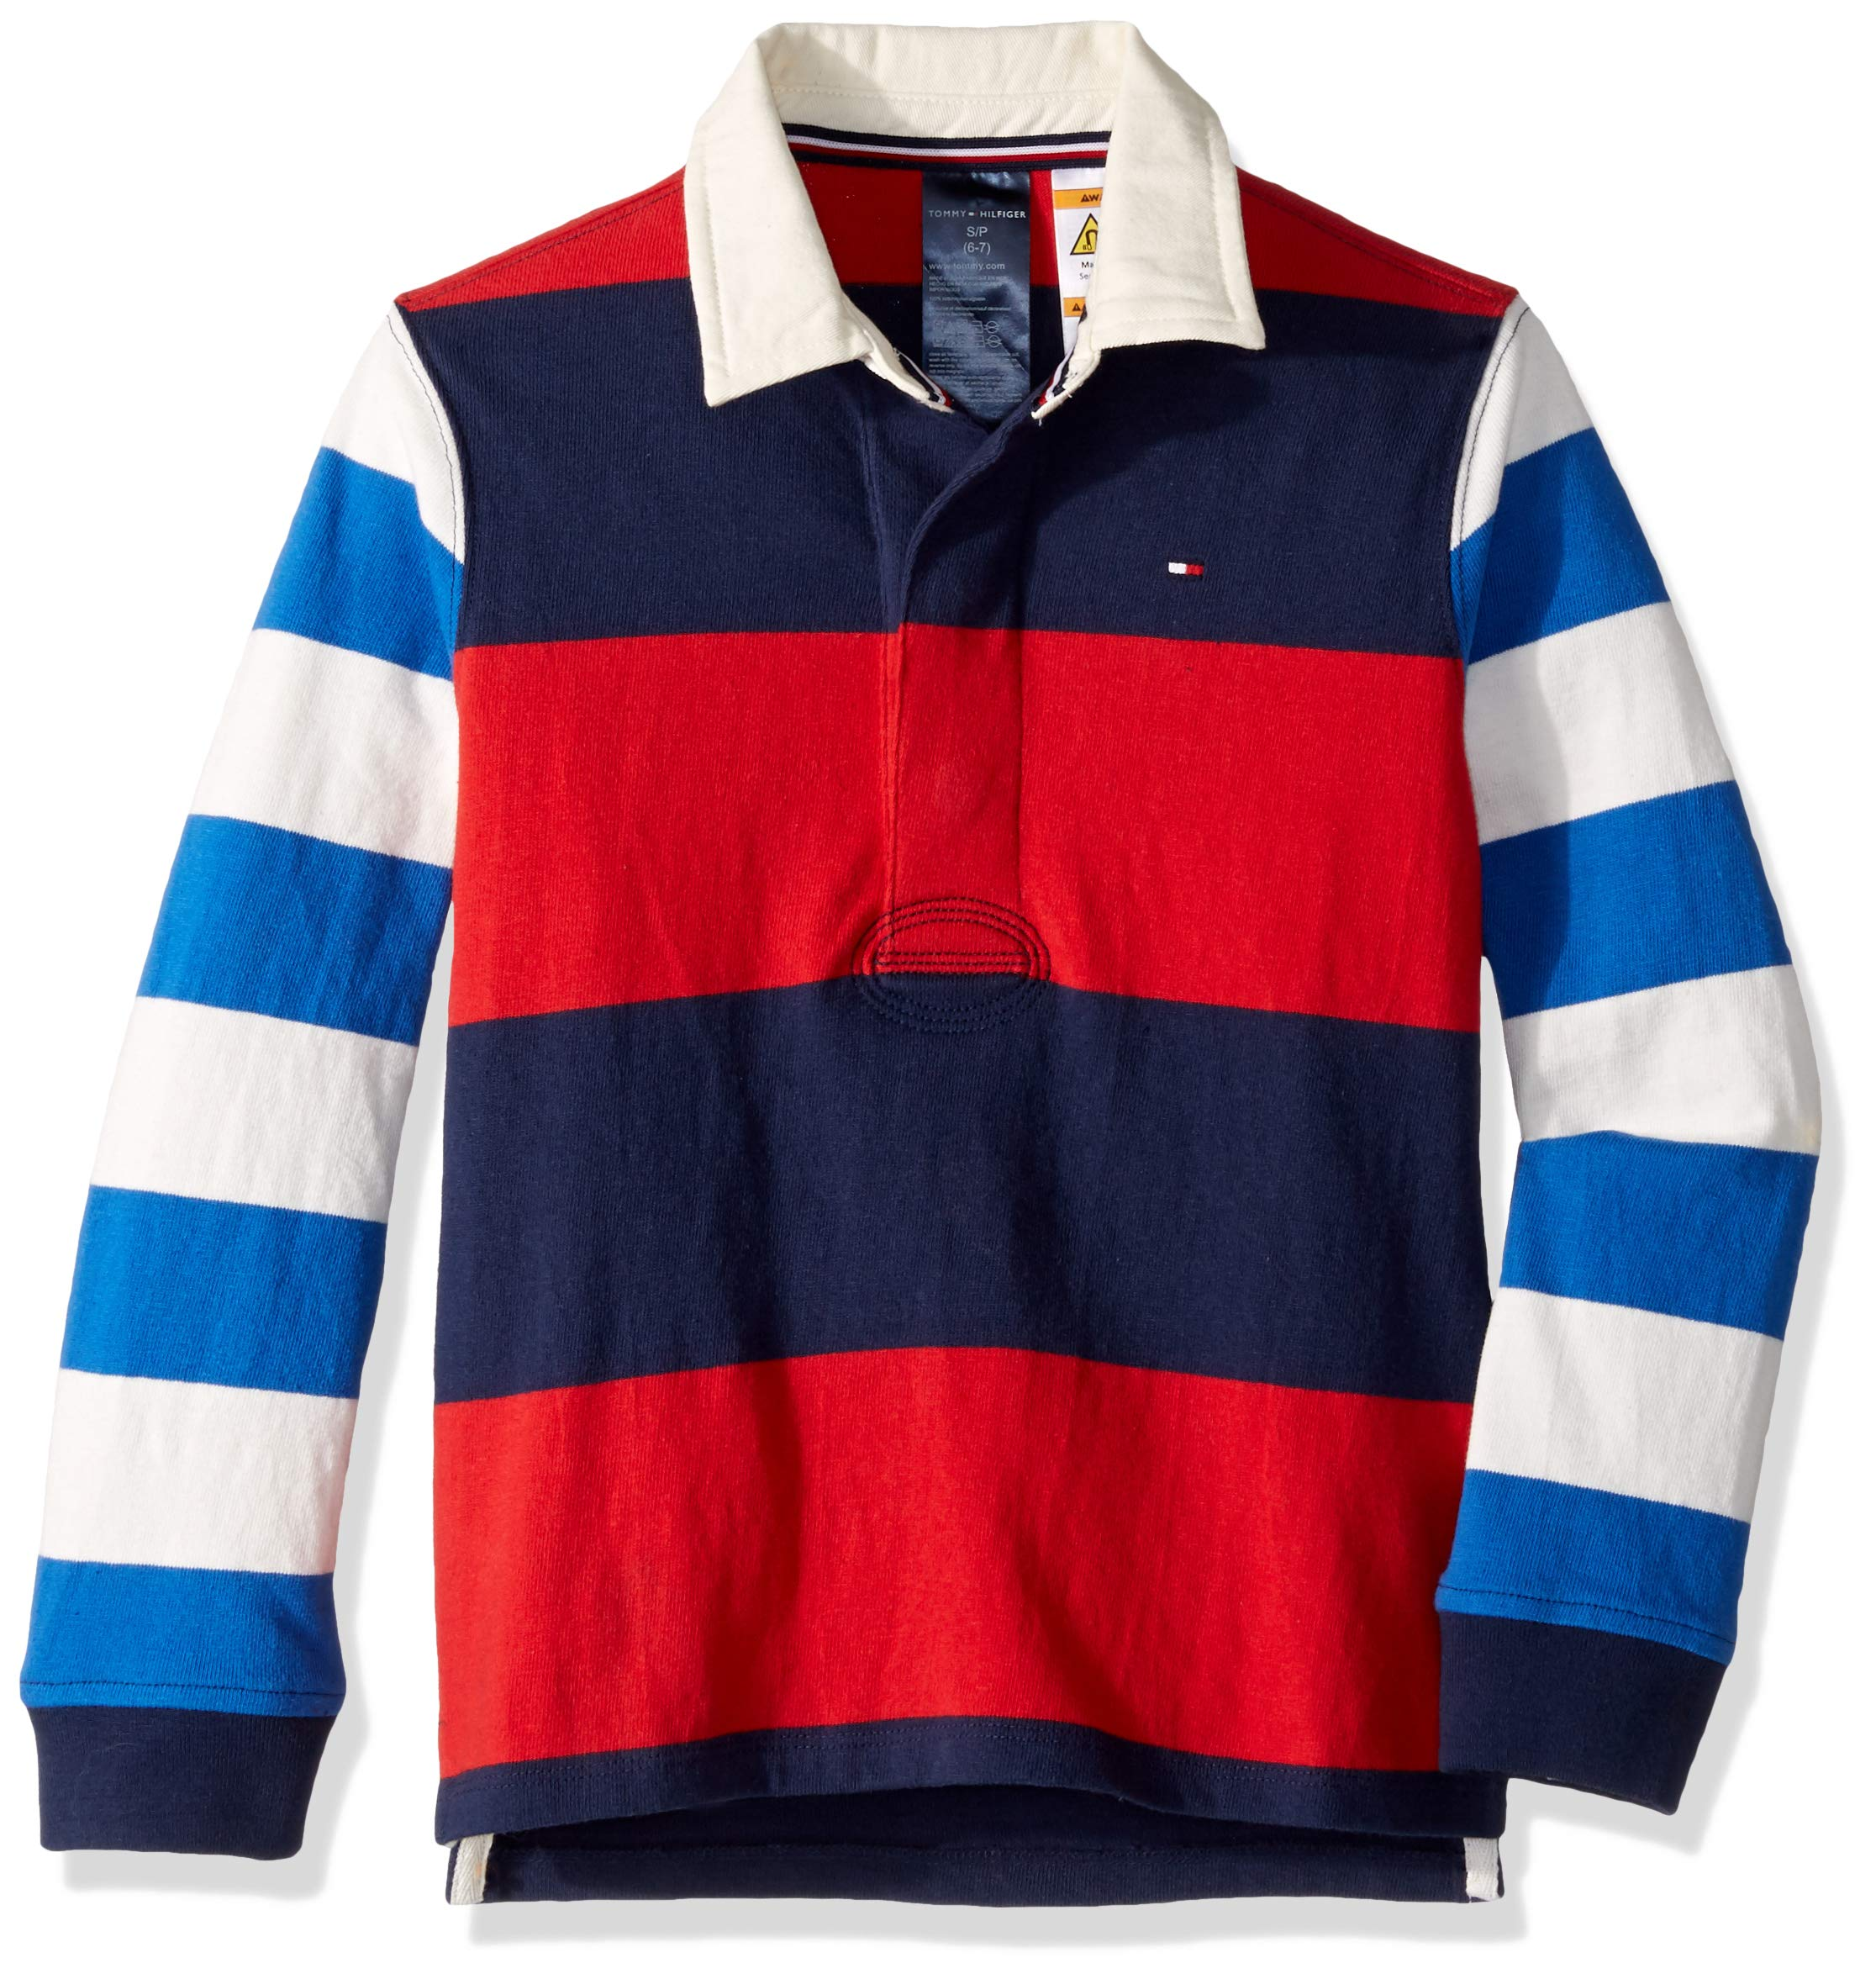 Tommy Hilfiger Boys' Adaptive Rugby Shirt with Magnetic Buttons, Red Coat Medium